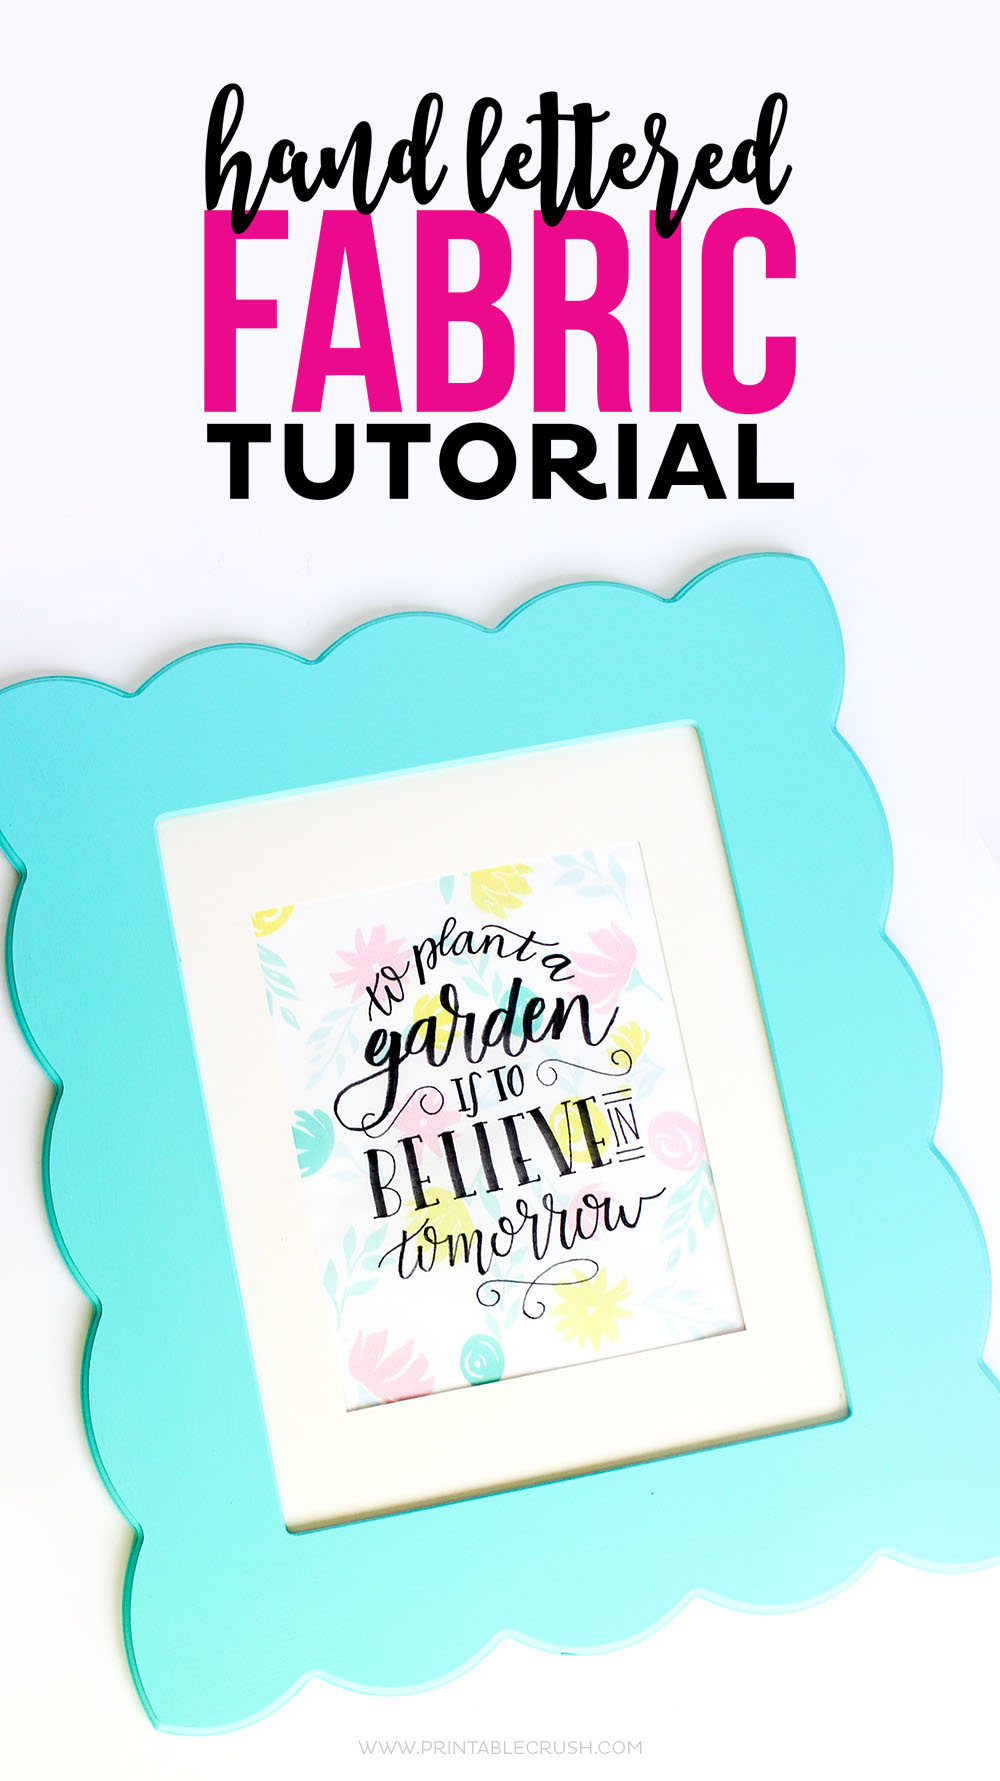 Download this FREE Printable Hand Lettering Practice Sheet and follow this Hand Lettered Fabric Tutorial to create a beautiful piece of artwork!